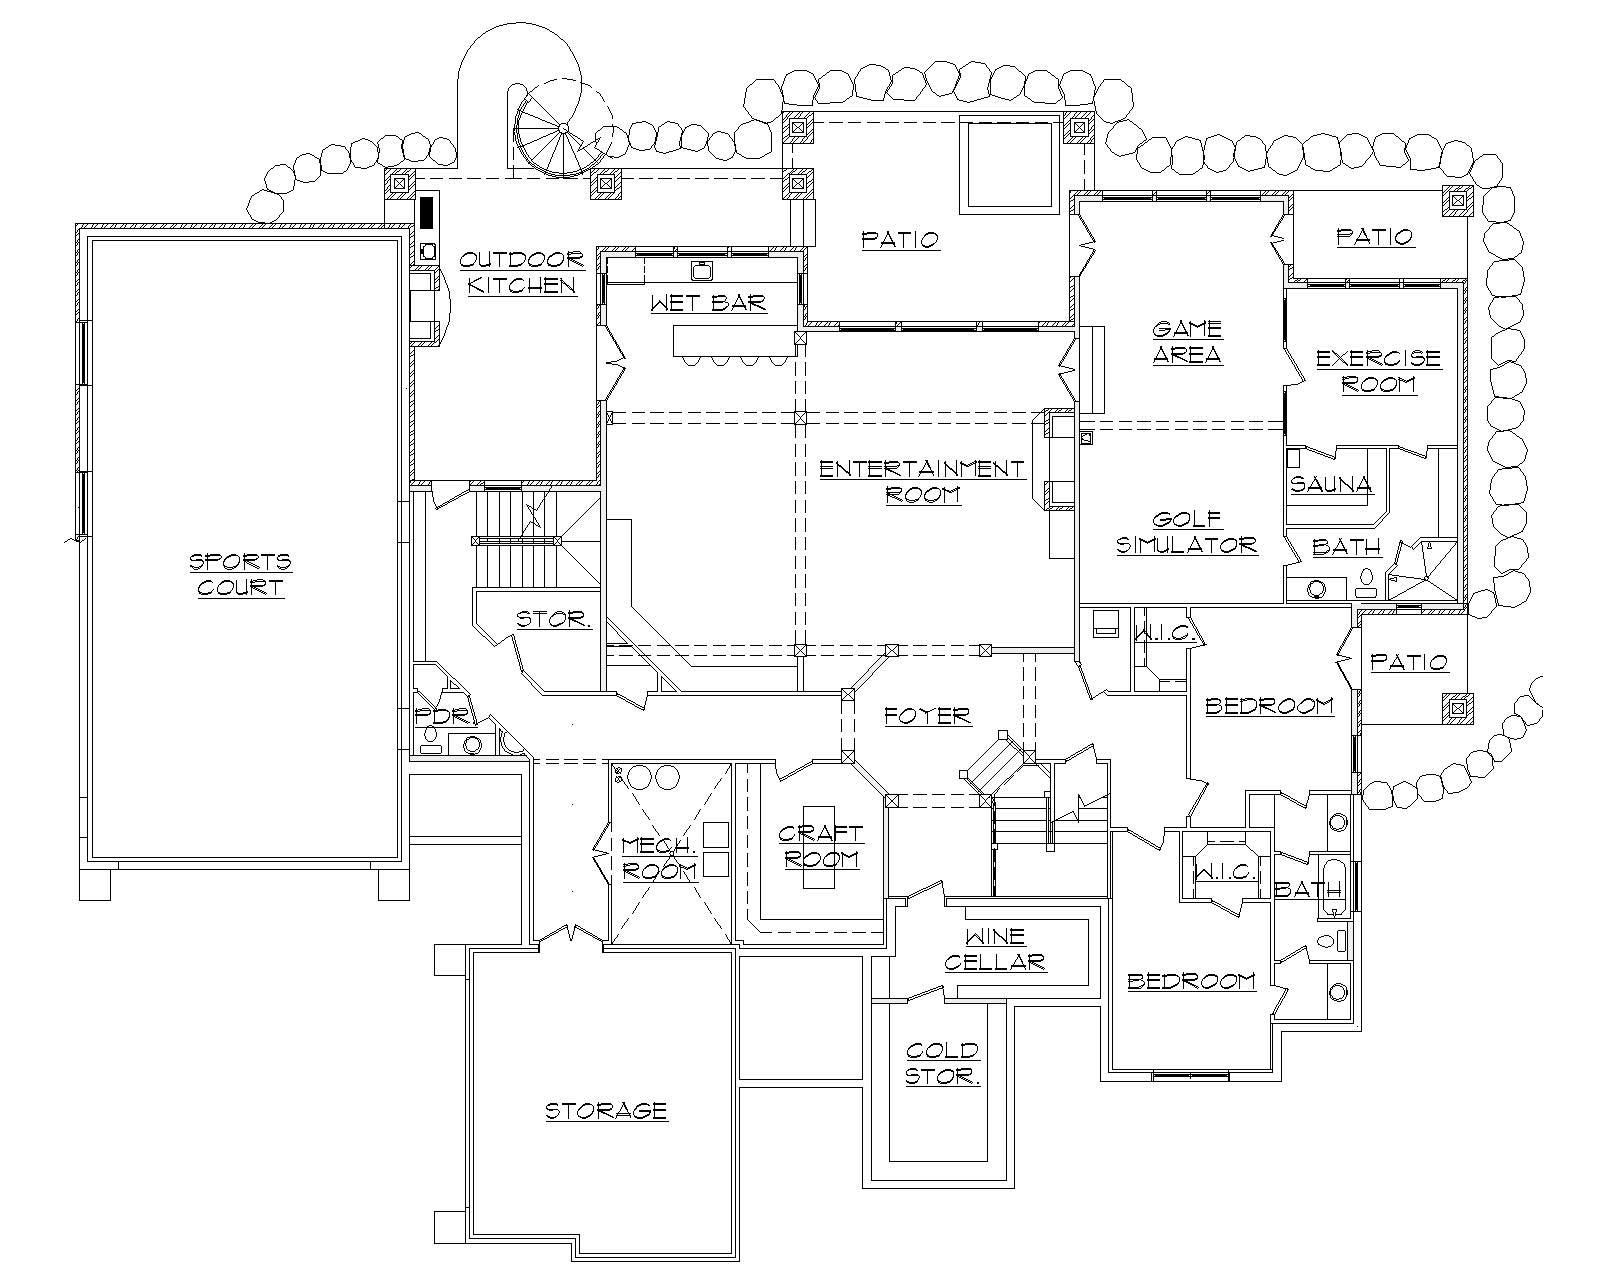 House plans with indoor basketball court how to costs for How much does it cost to build indoor basketball court